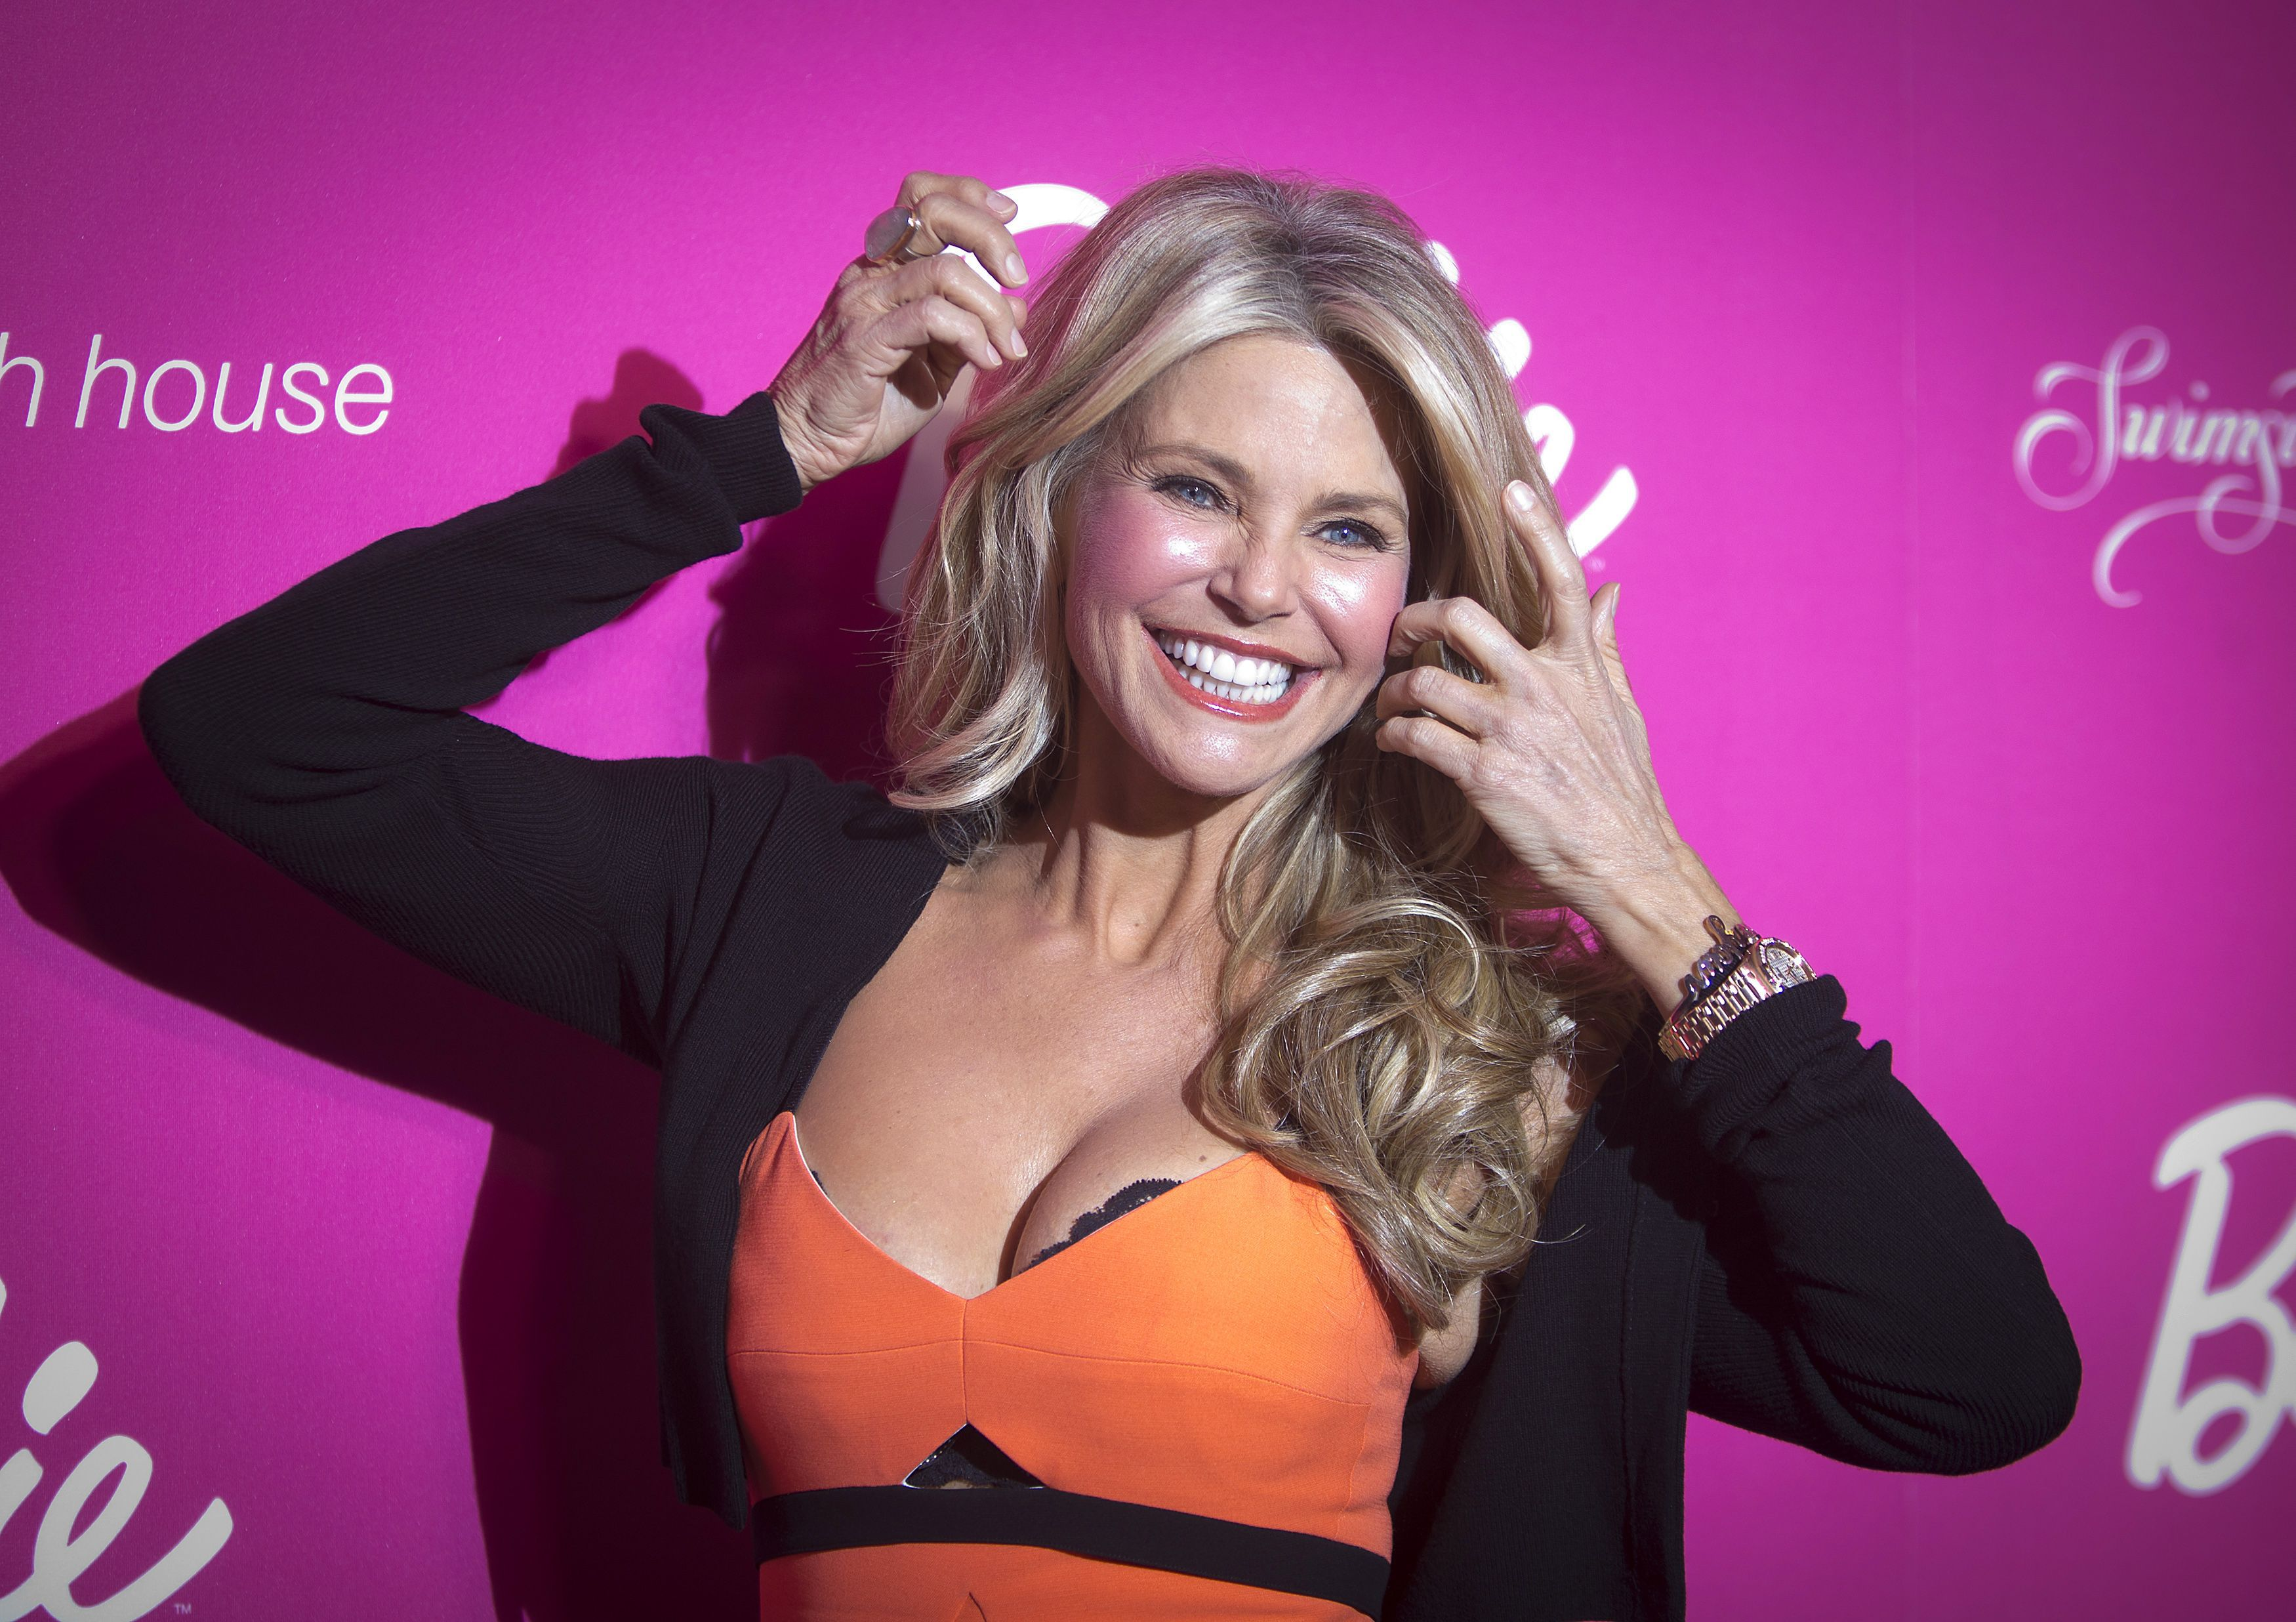 Christie Brinkley Wallpapers And Backgrounds